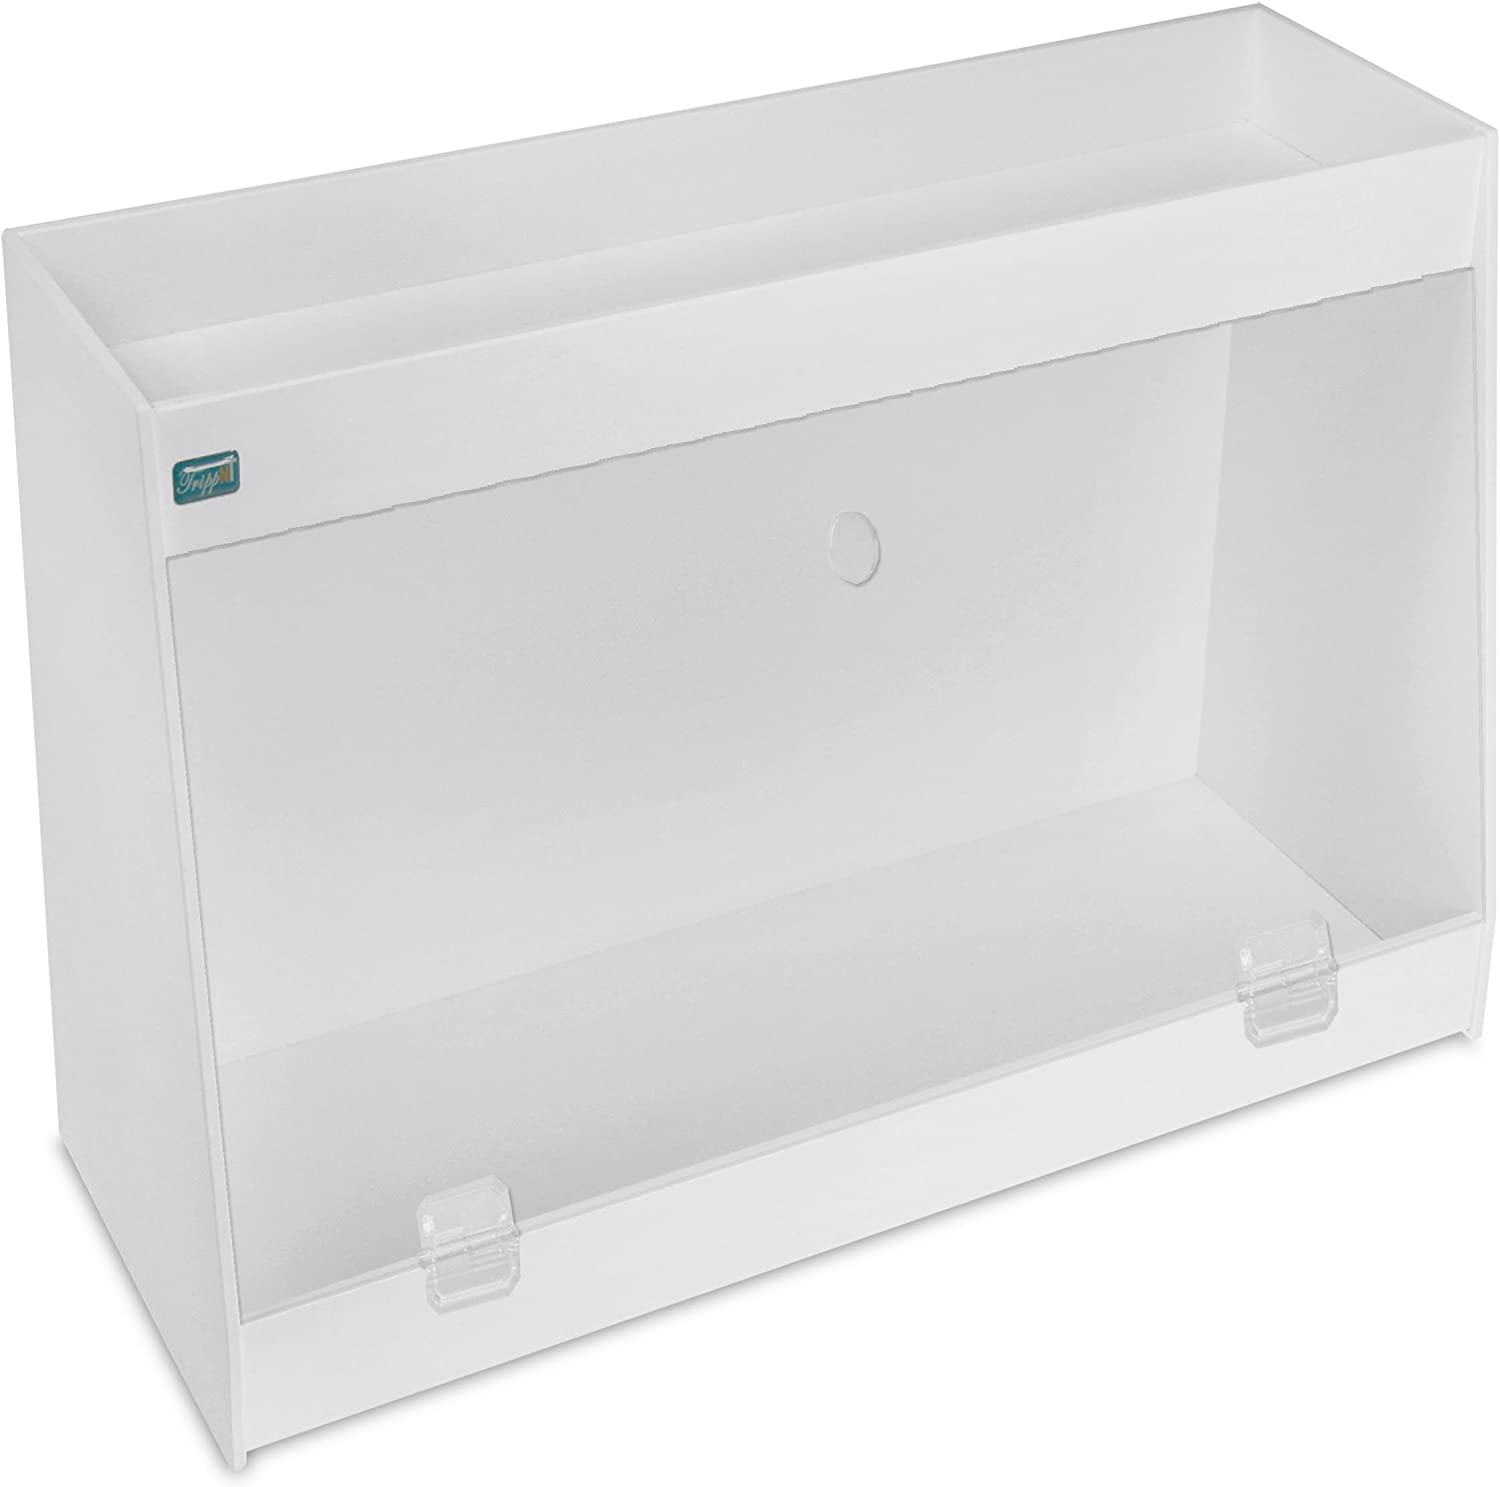 TrippNT 50606 PVC Angled Double Safety Shelves with Clear Door, 24-Inch Width x 16-Inch Height x 9-Inch Depth, Clear White